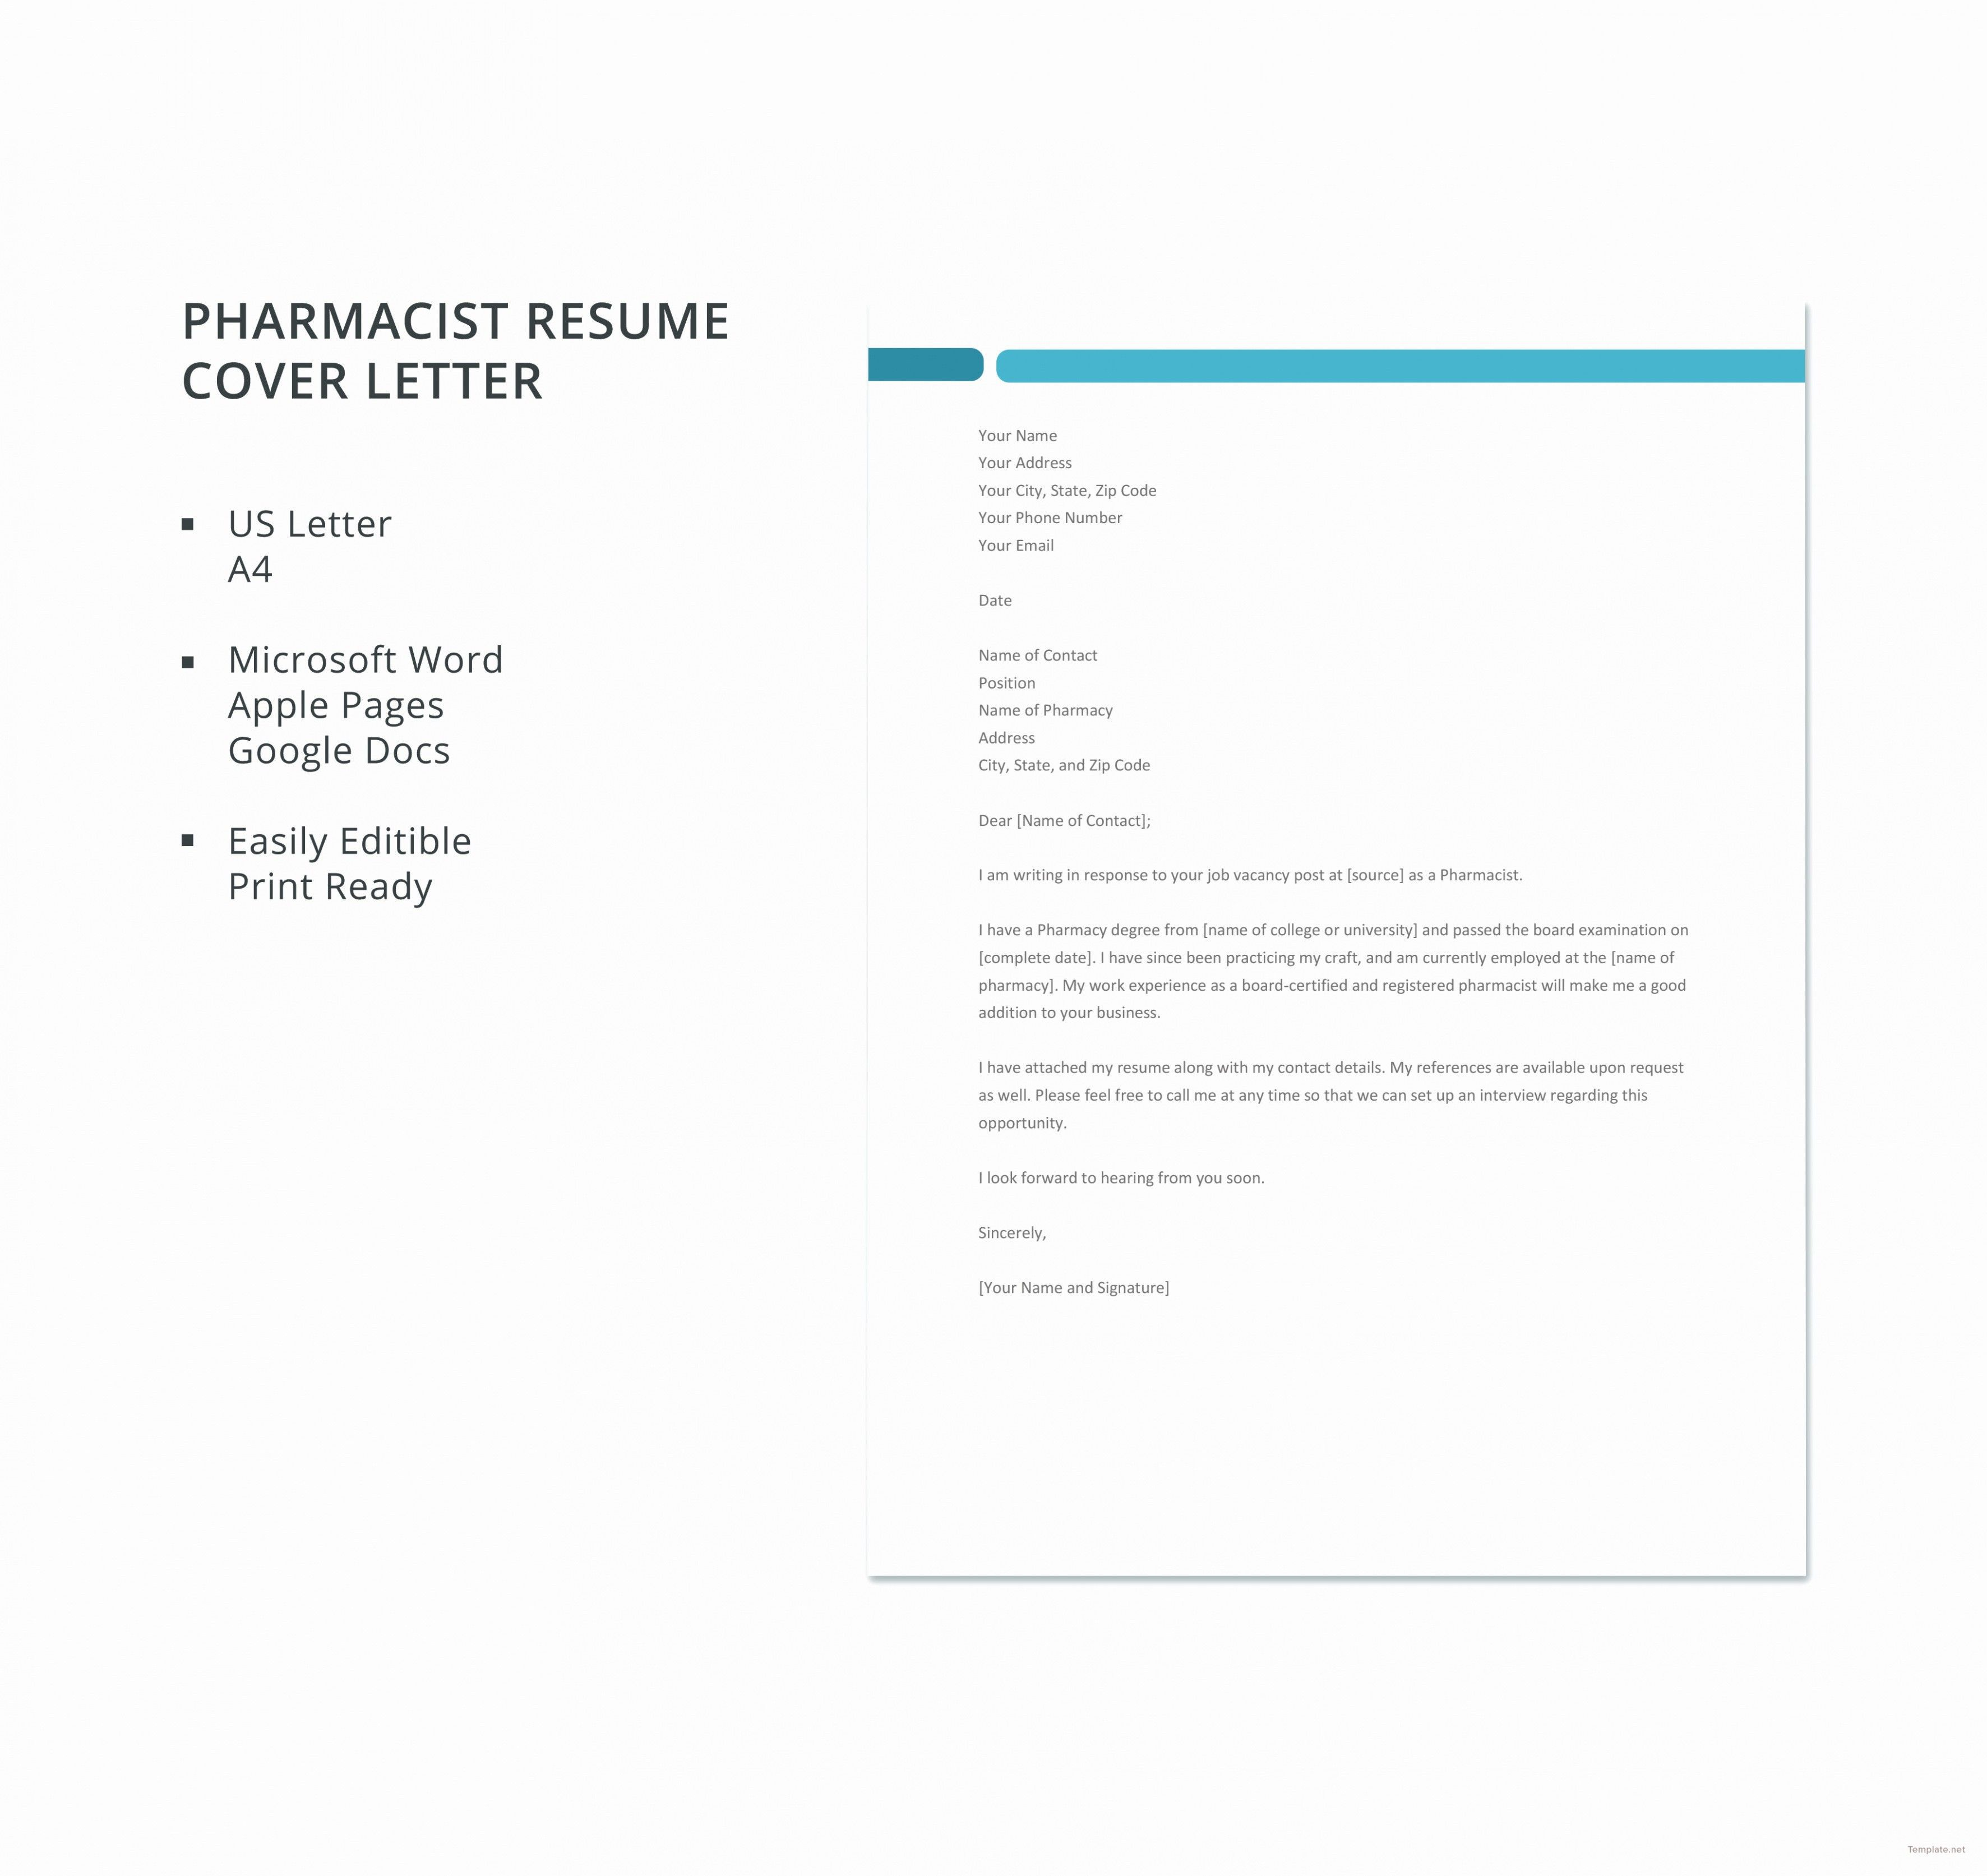 000 Archaicawful Google Doc Cover Letter Template High Resolution  Swis Free RedditFull